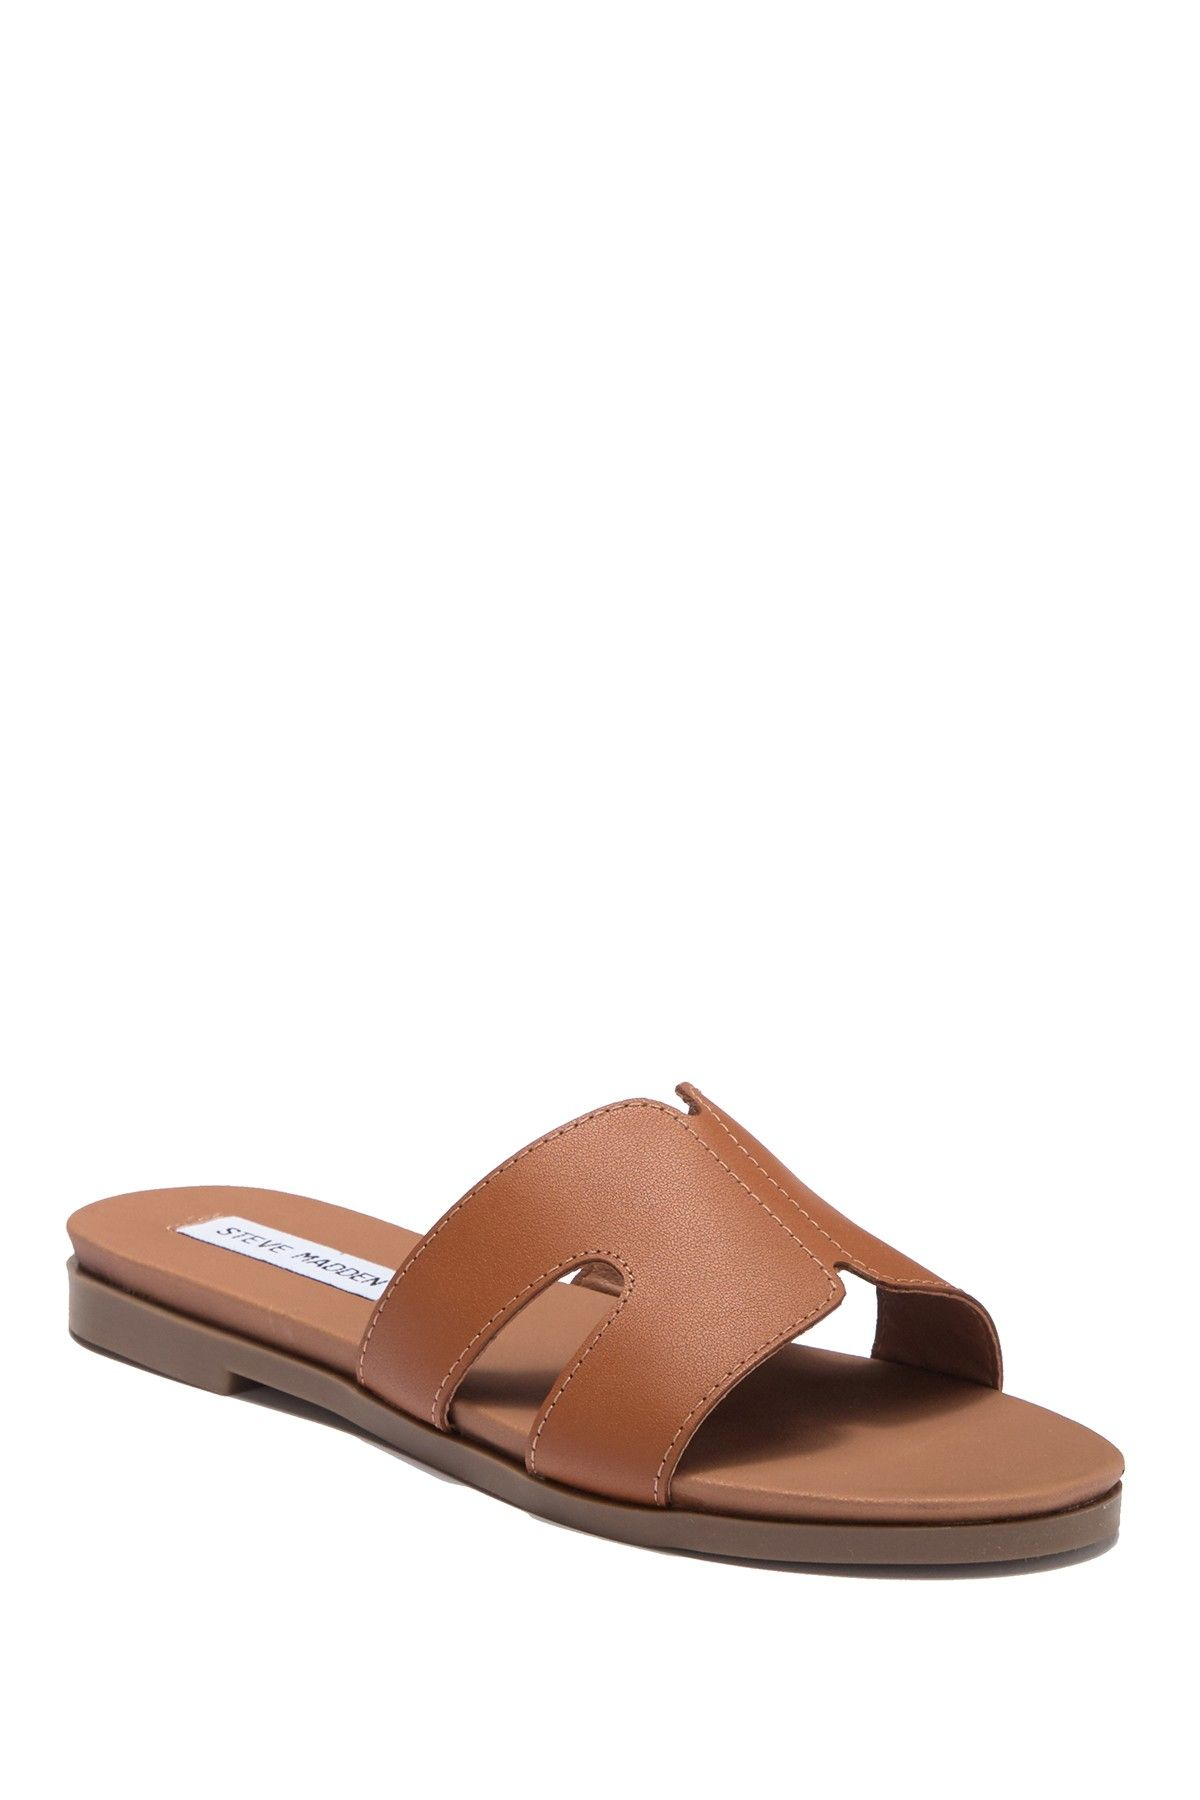 57d05911f1e4e Hoku Leather Slide Sandal in 2019 | Over 50 Fashion - Summer Style ...